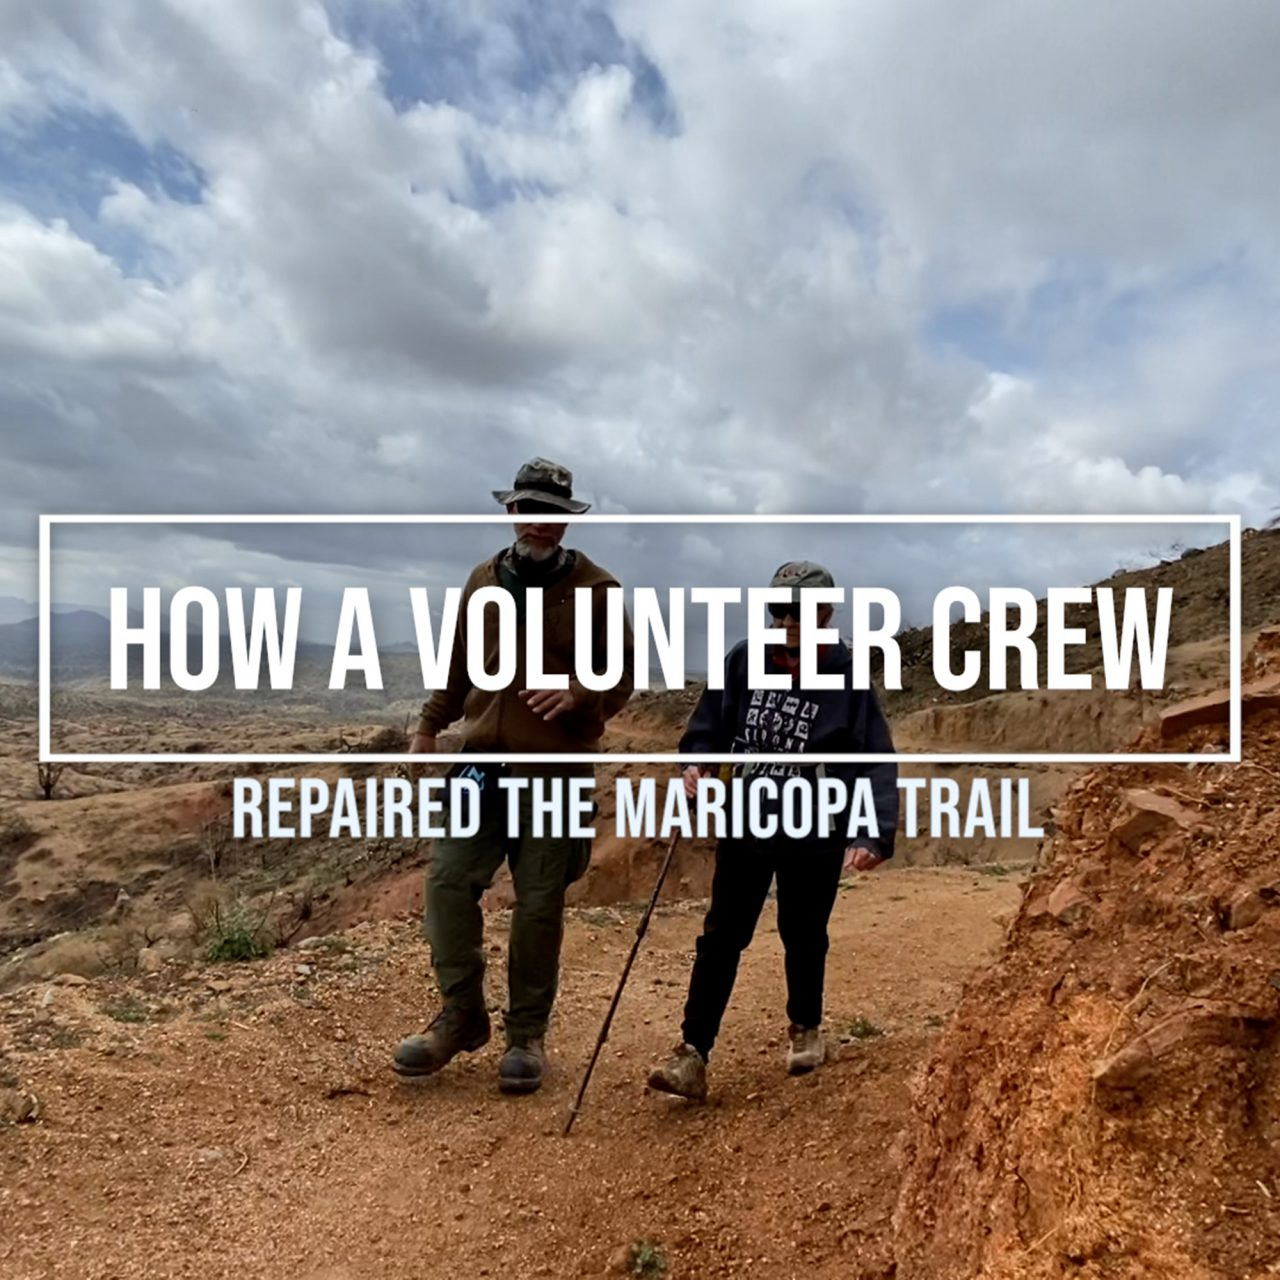 Volunteers Rebuild Part of Maricopa Trail Damaged by Wildfire